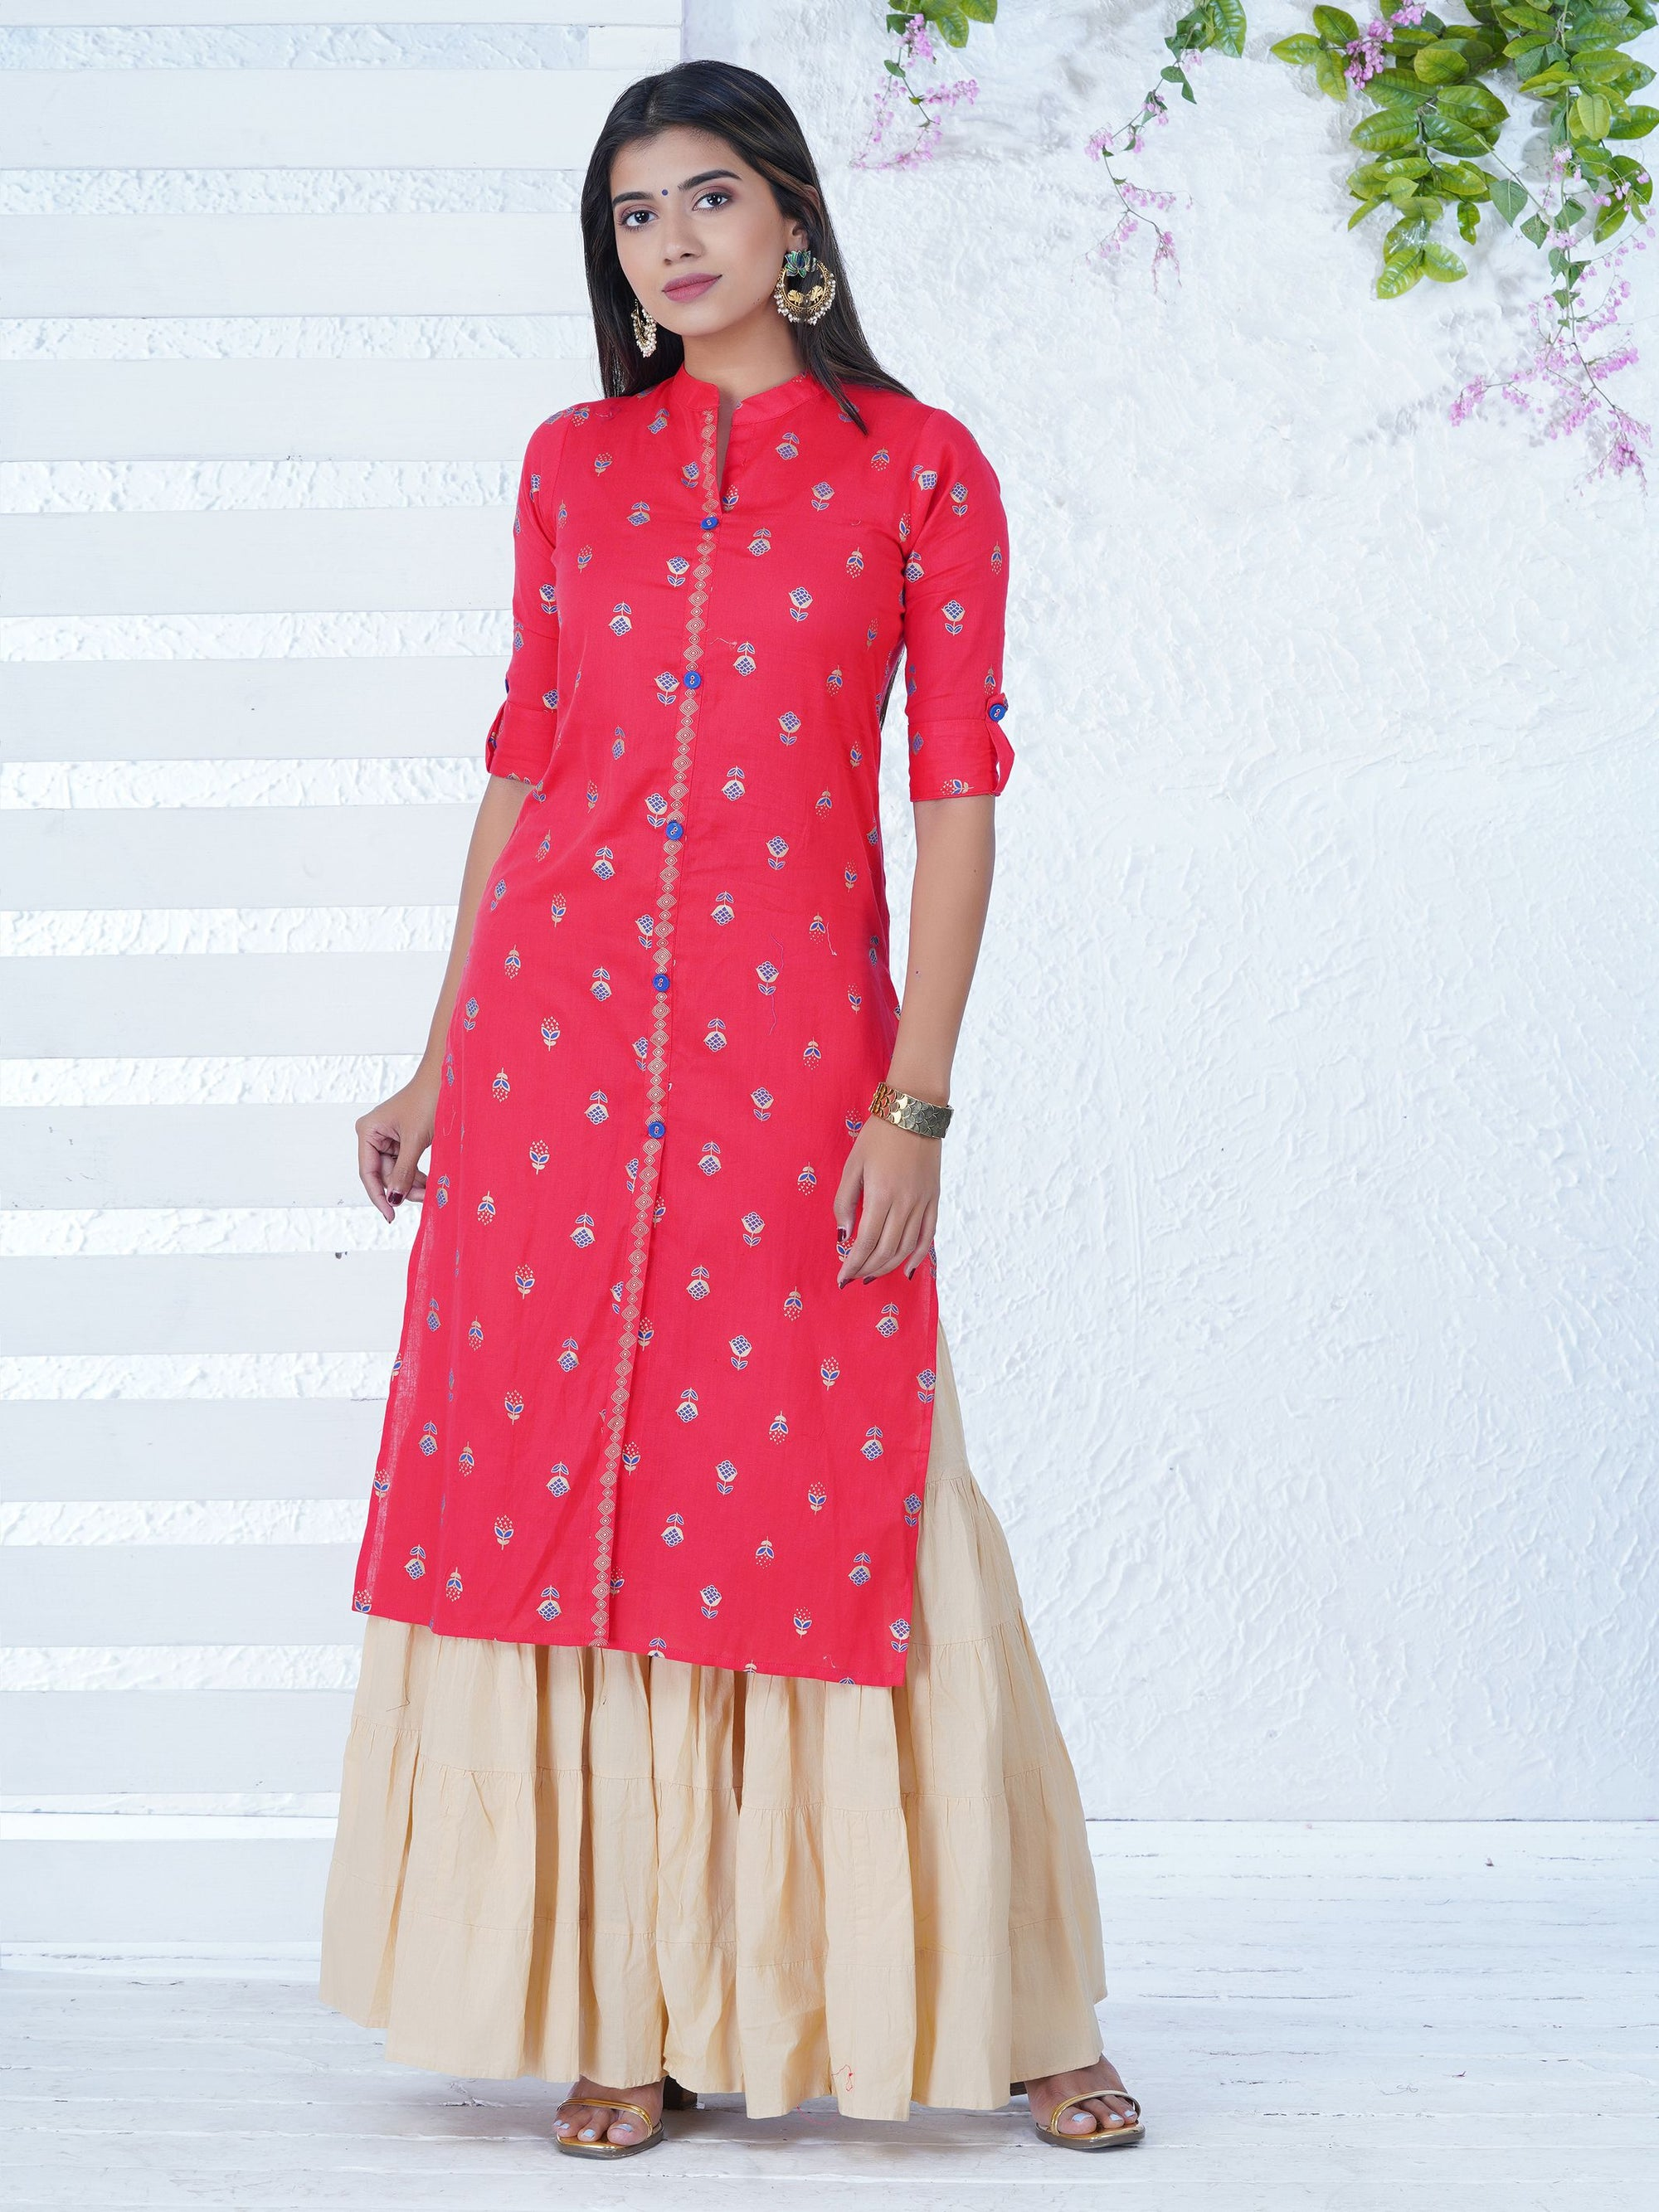 f319fa2dd29197 Golden Abstract Floral Motifs Printed Kurta - Raspberry Red - Fashor